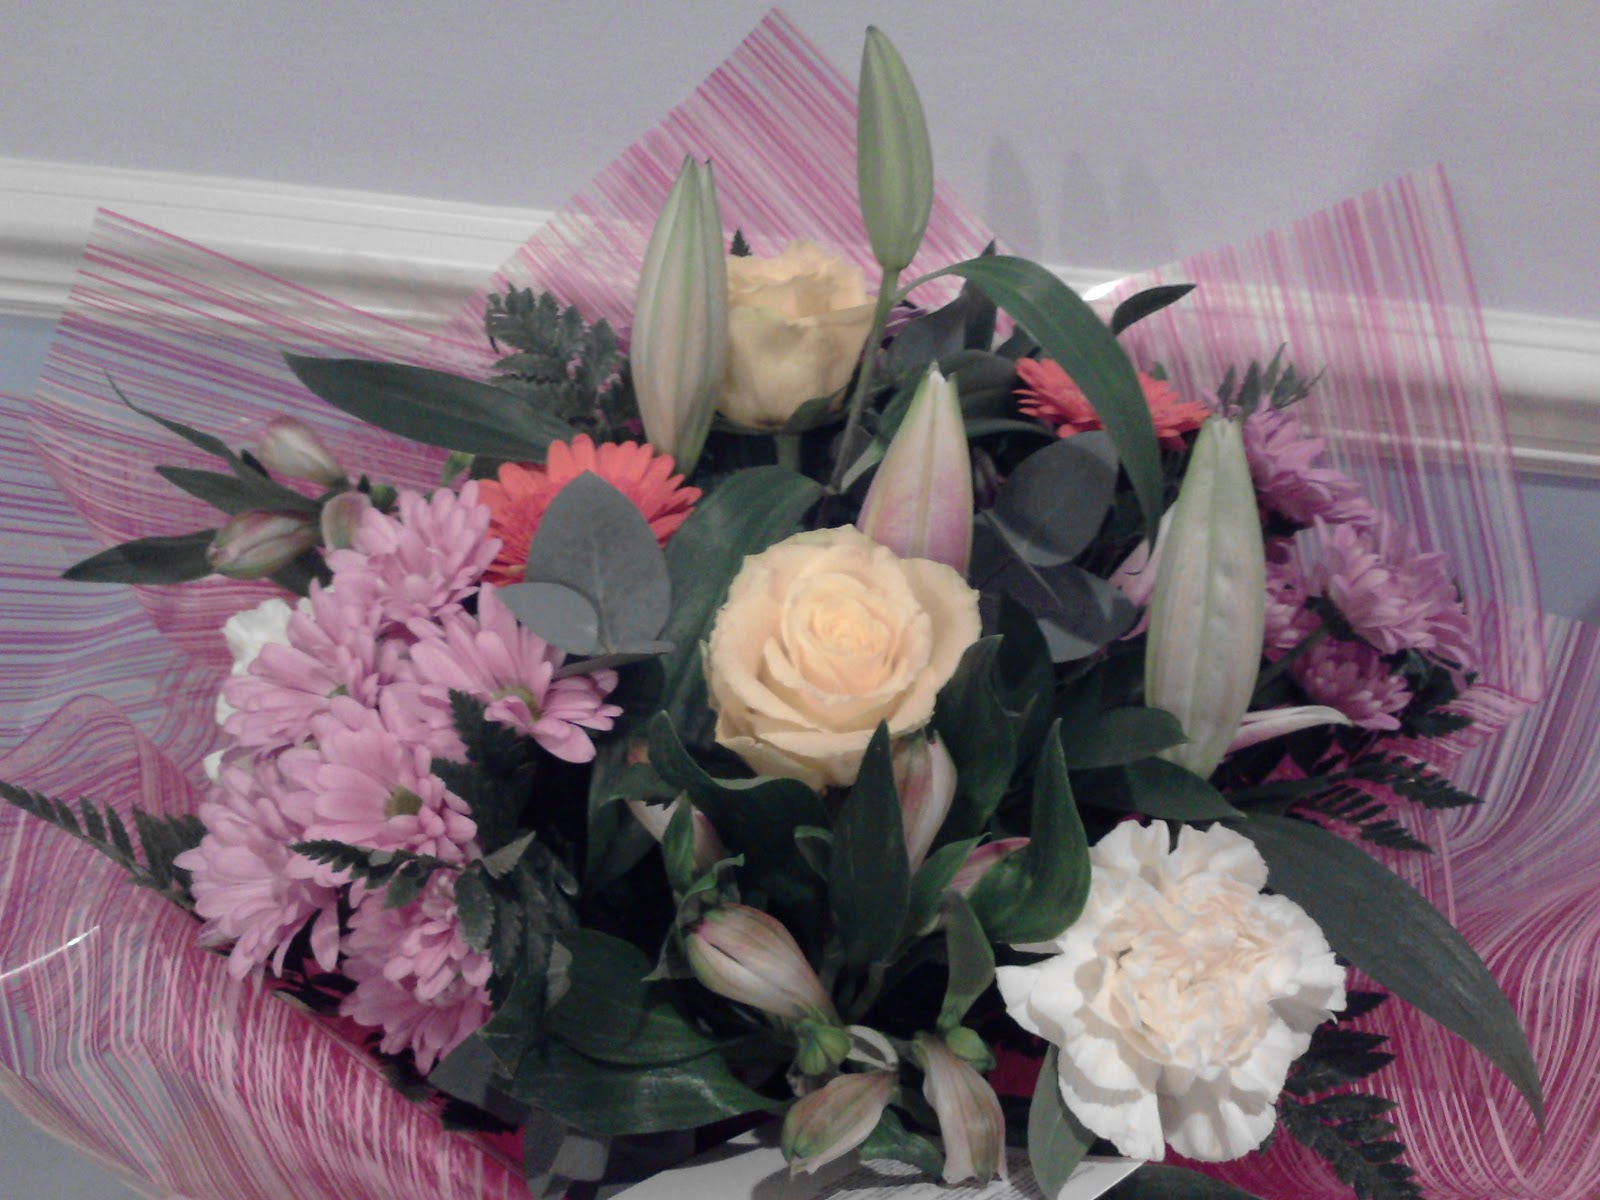 Review Of A Bouquet From Interflora My Mummy Reviews